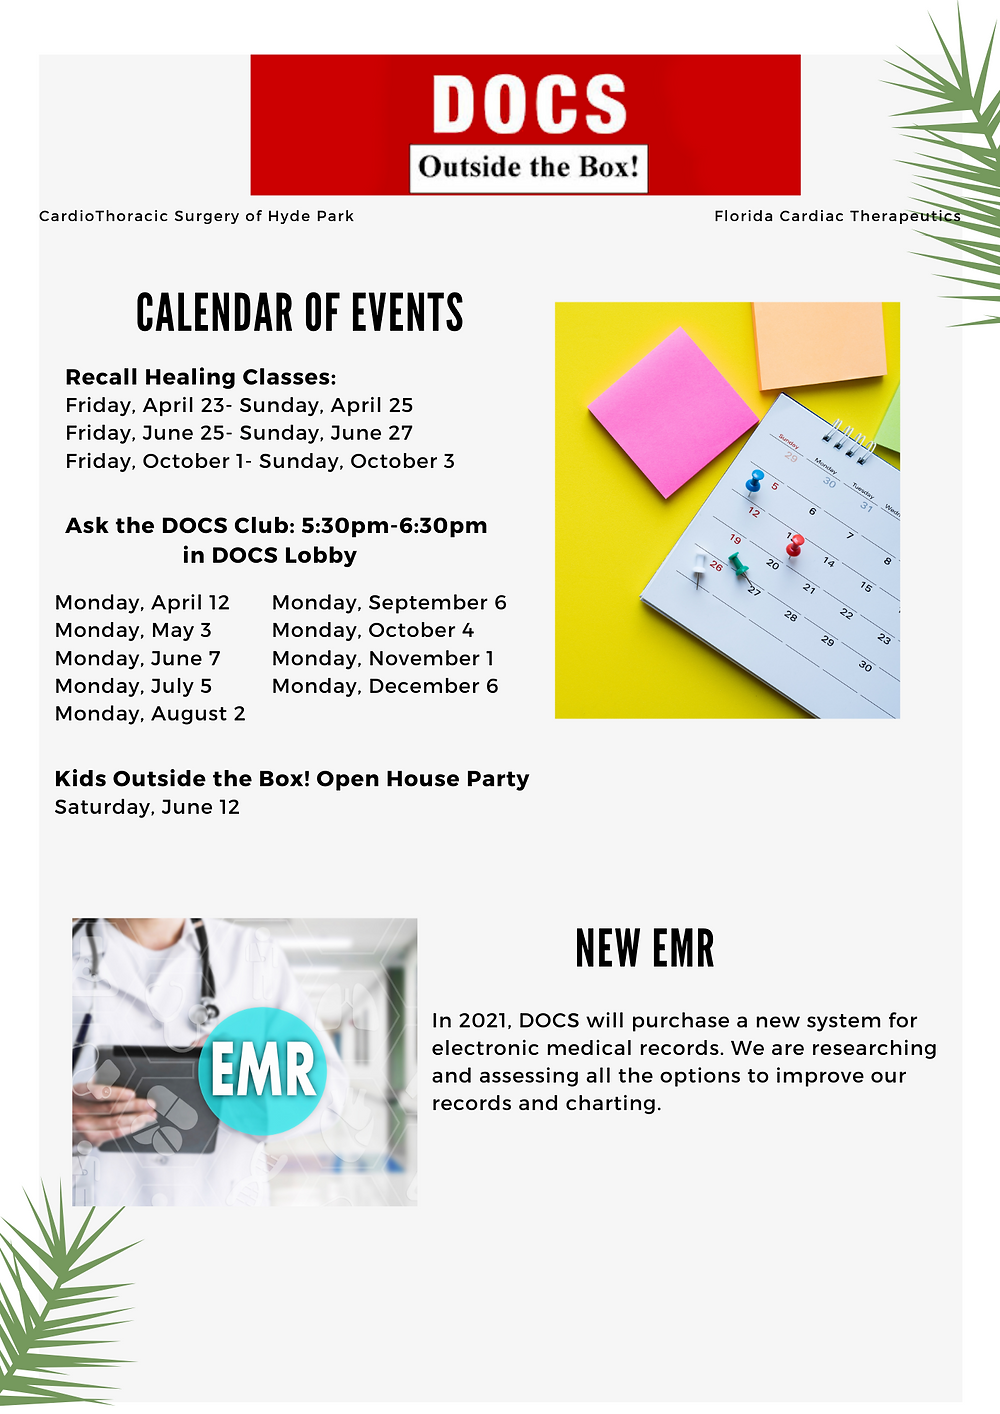 Calendar of upcoming events and DOCS looking for new EMR system.